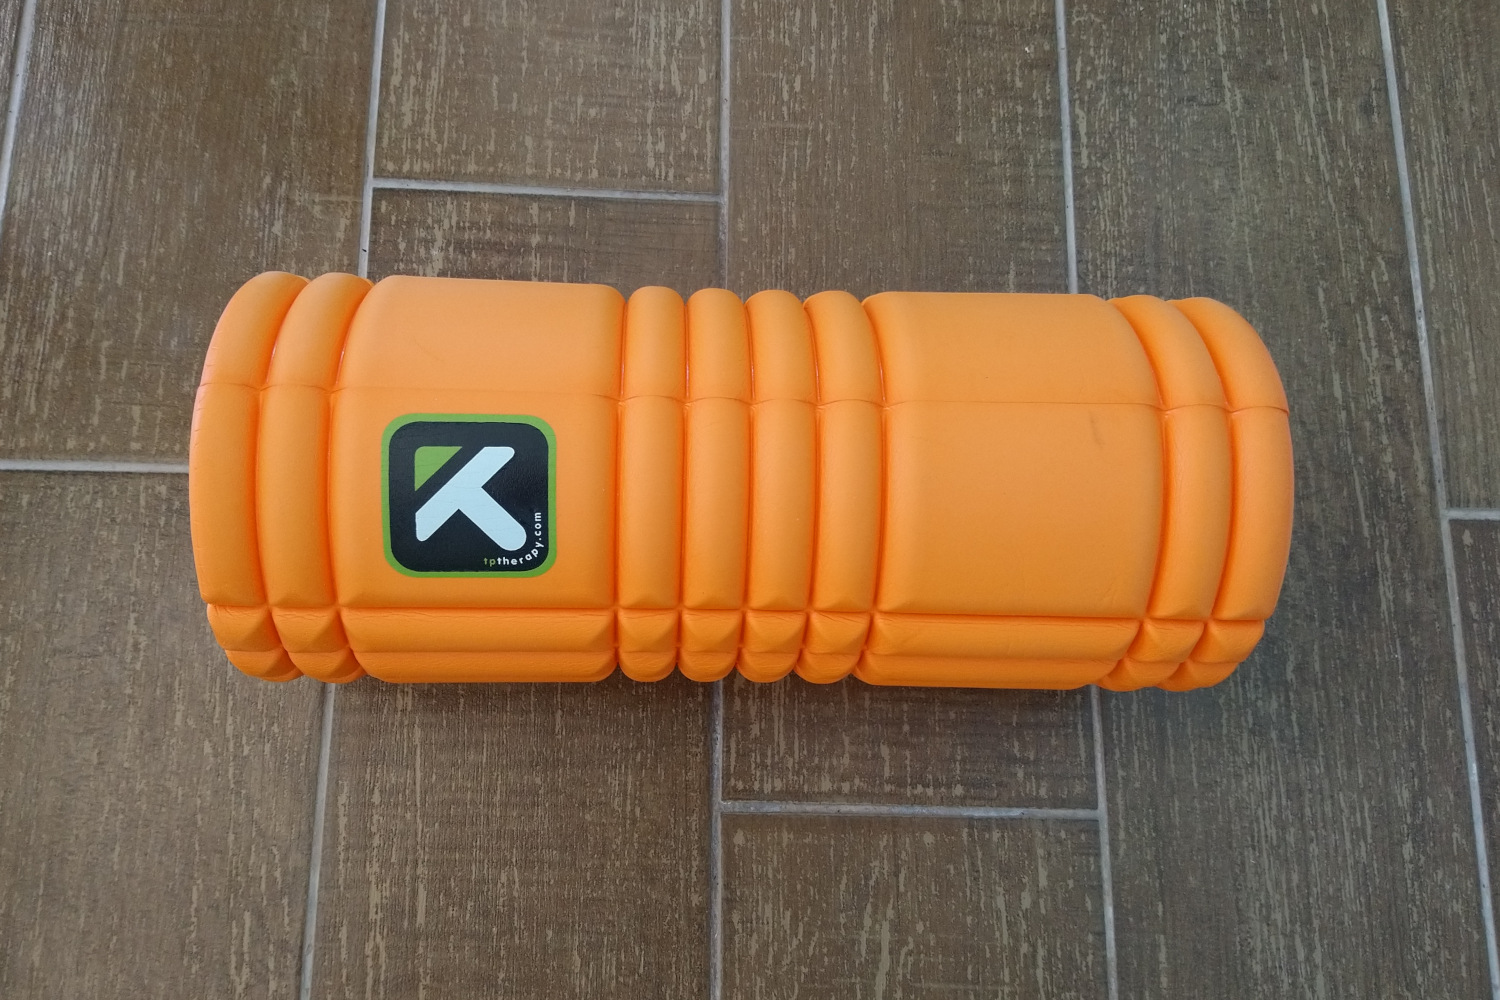 Foam Roller Work Out to Relieve Tension